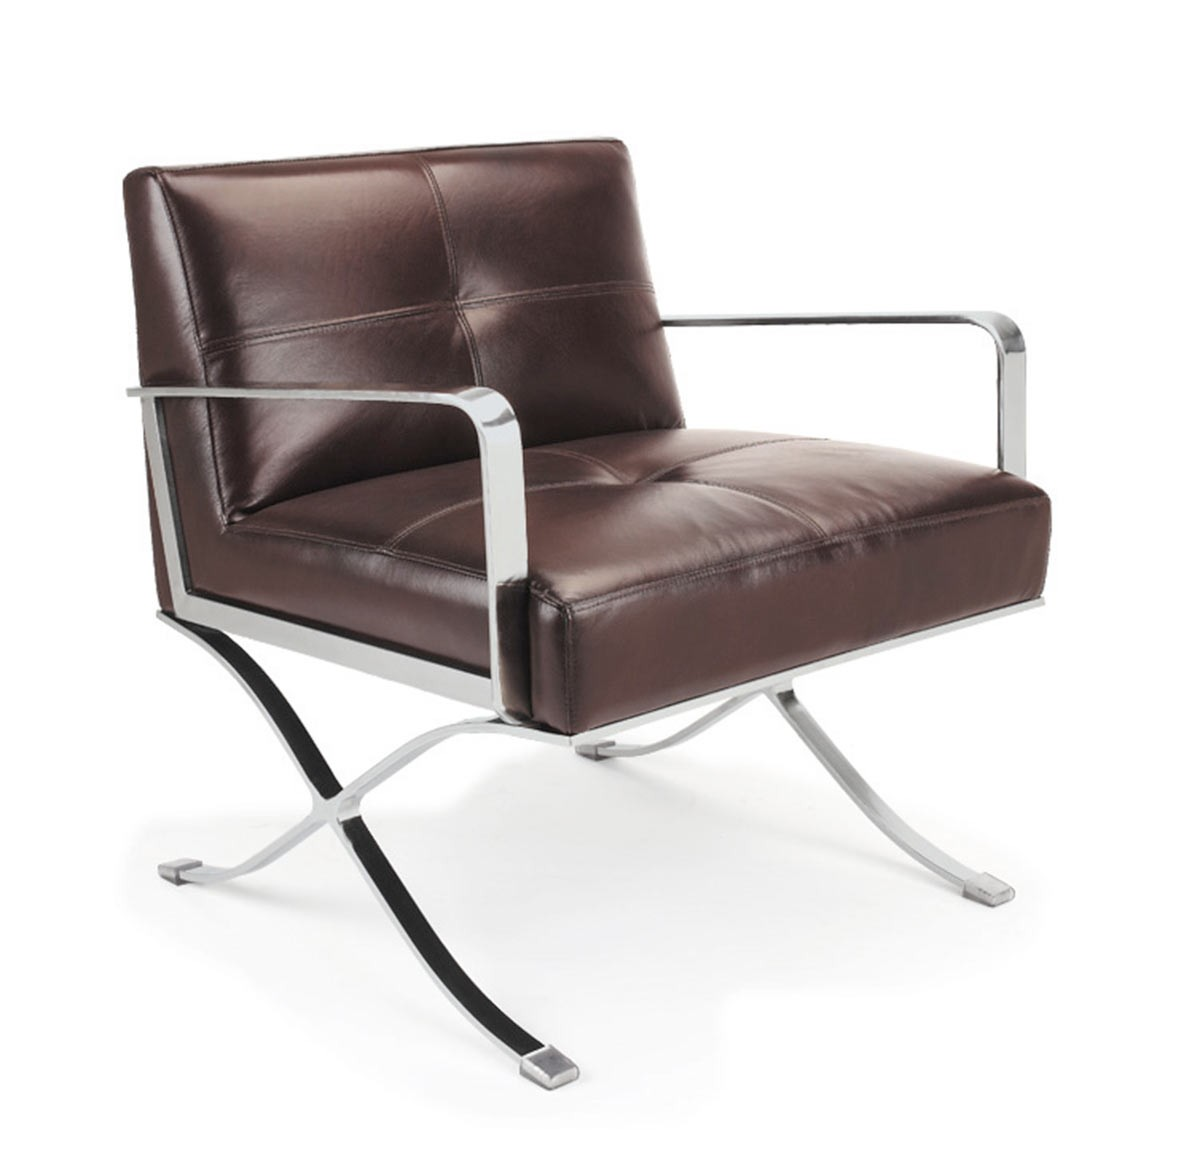 leather chair modern plastic outdoor chairs divani casa ec 011 lounge gallery image 83 small thumbnail 119